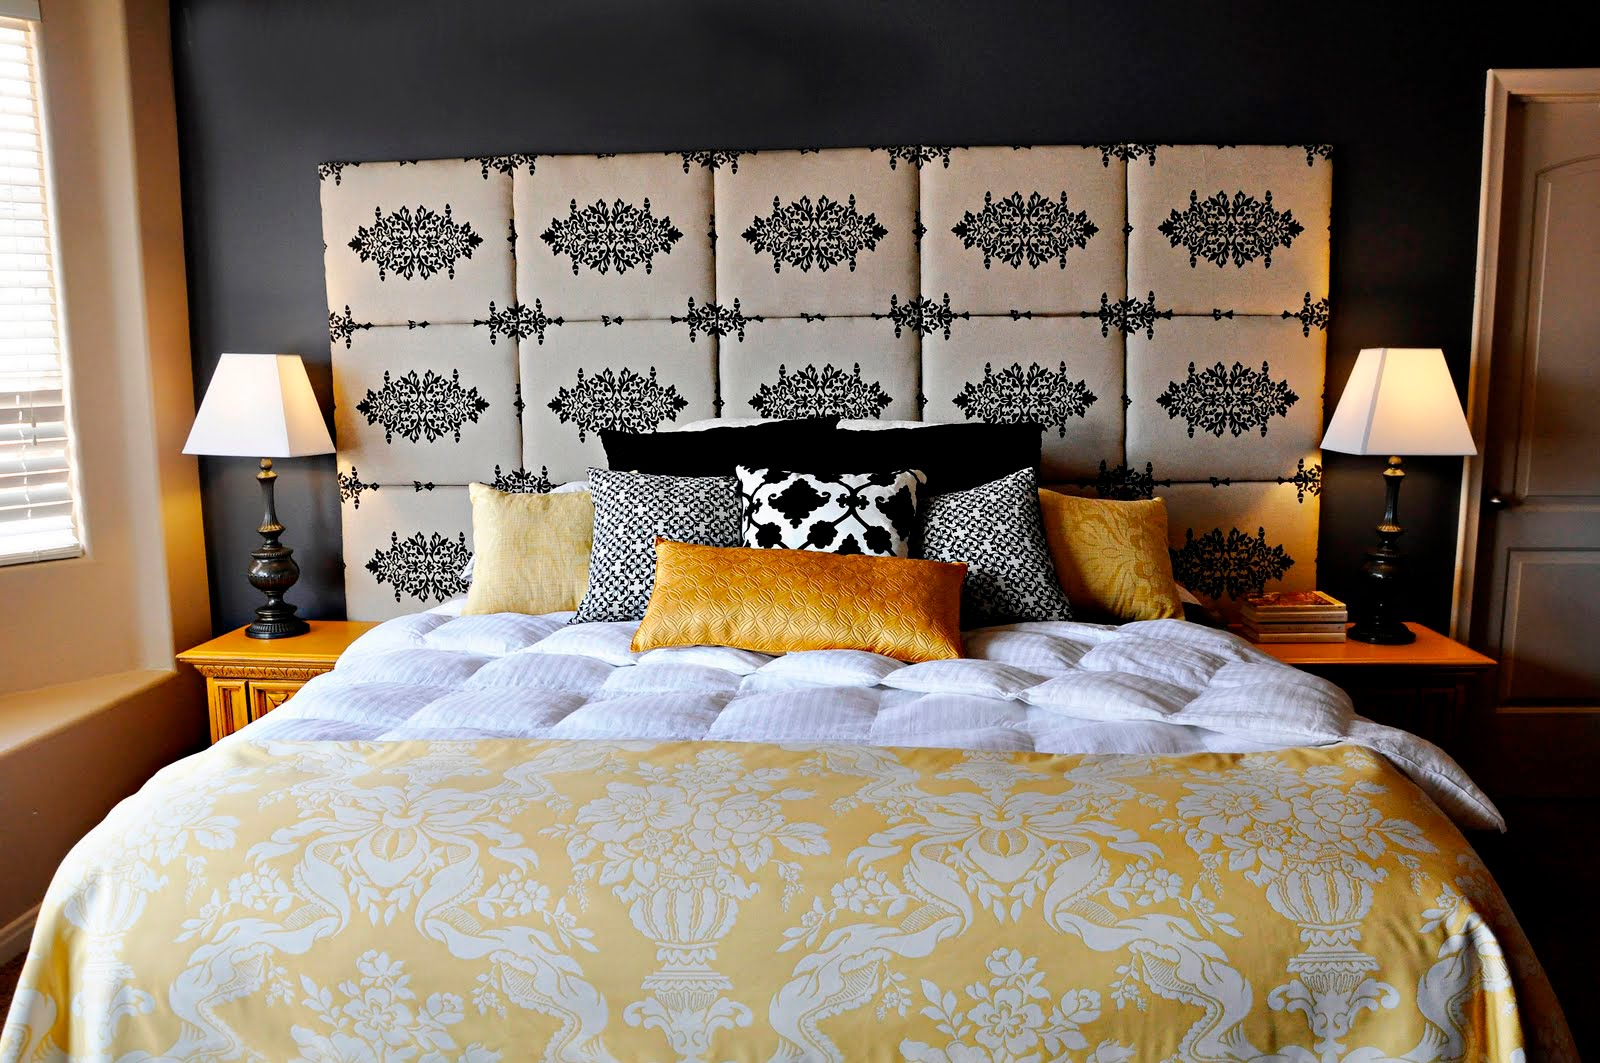 Diy headboard project by brooke made by girl - Make your own headboard ...